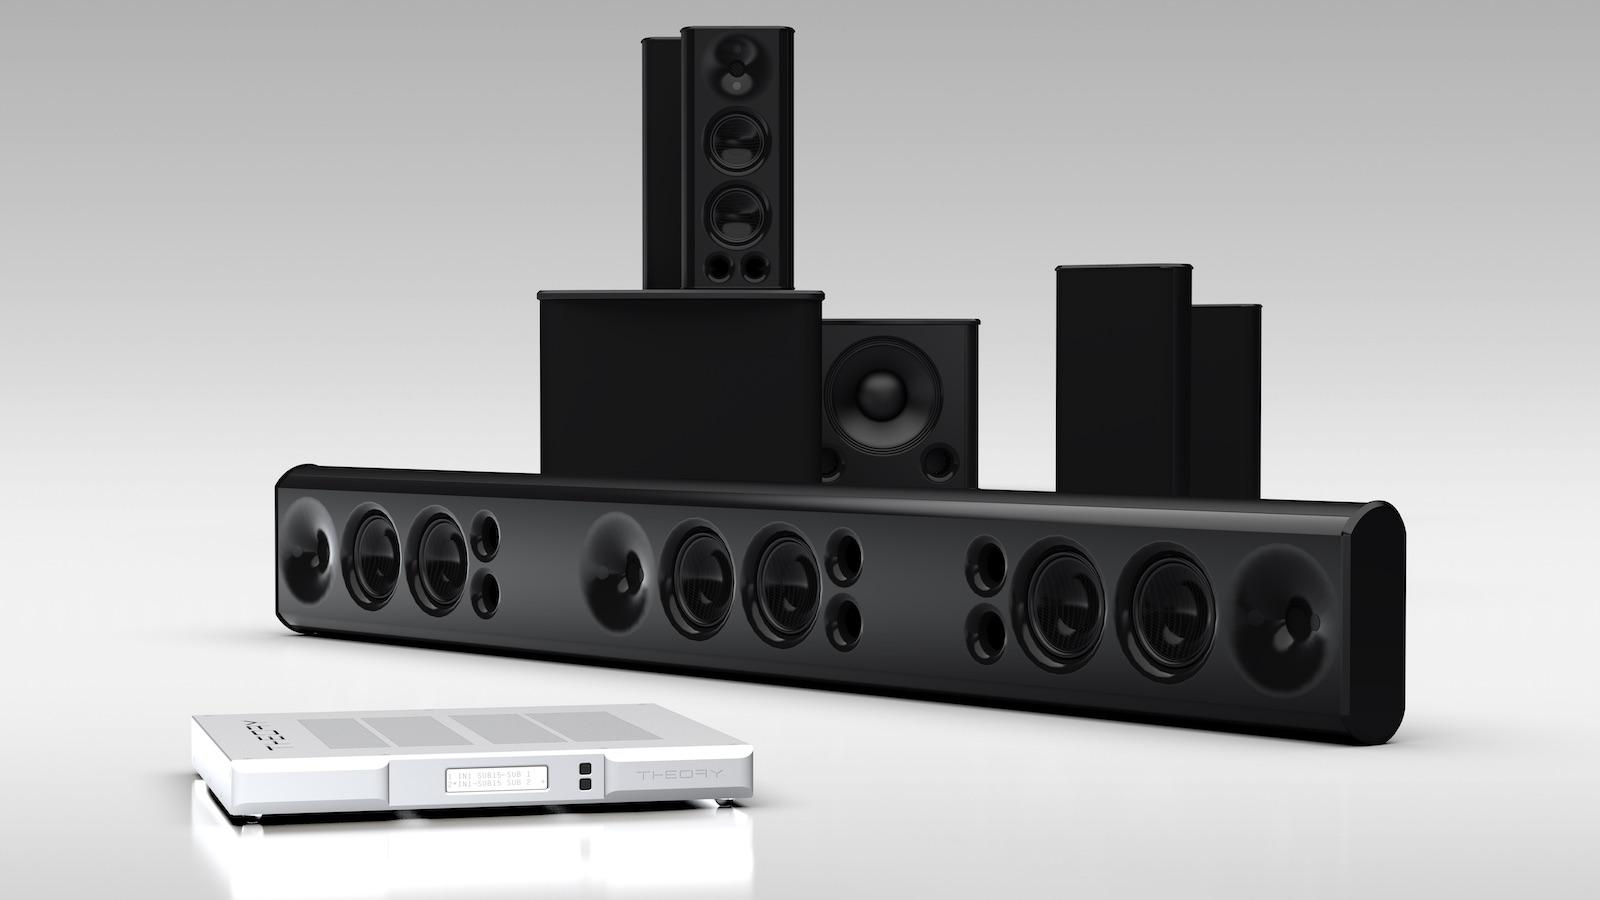 Theory Audio Design Surround Sound System